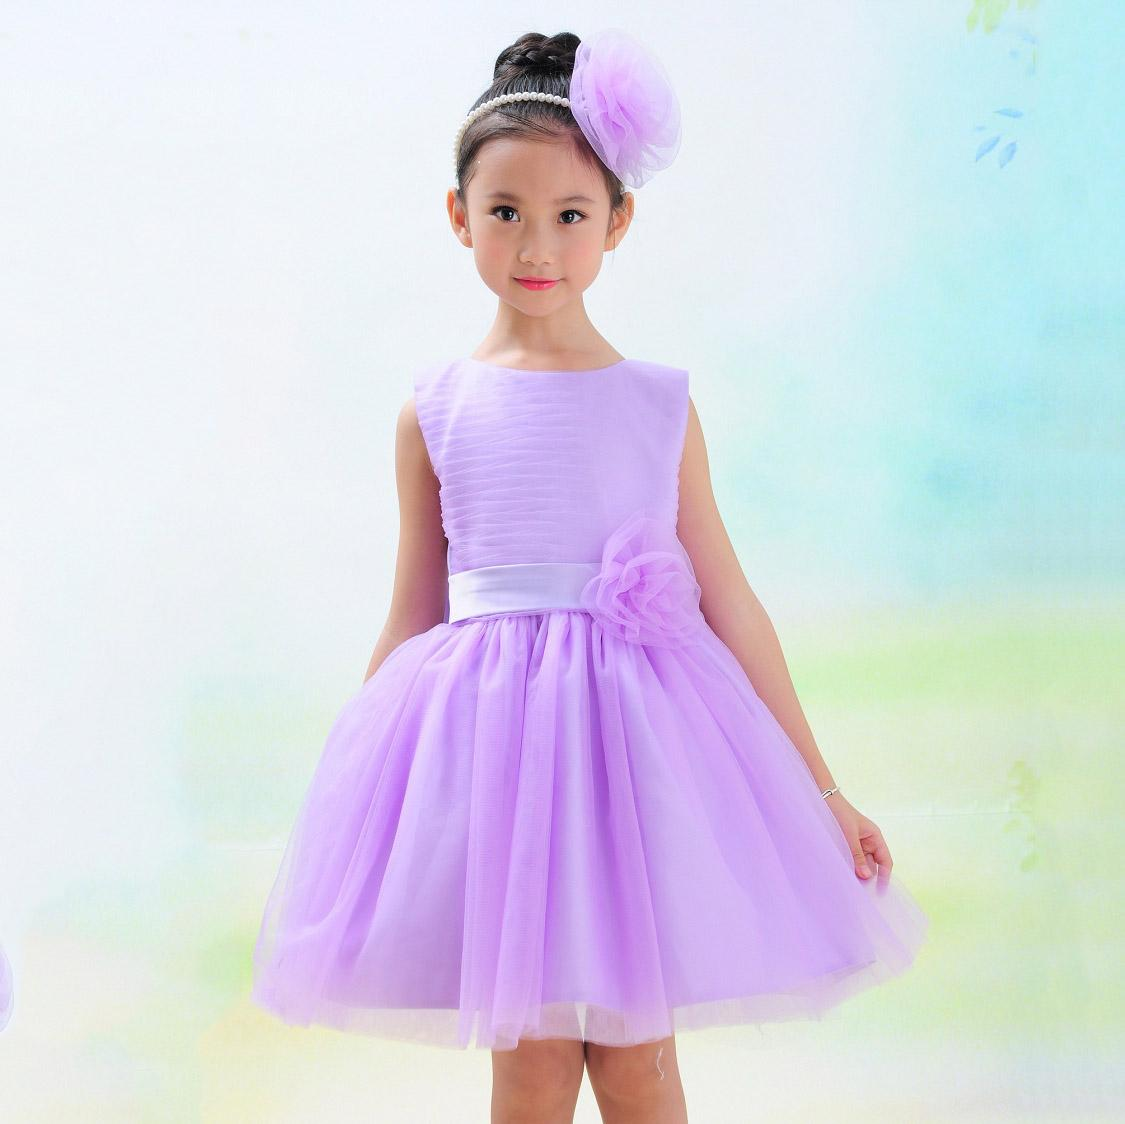 Awesome Party Dress Kids Adornment - Wedding Dress Ideas ...